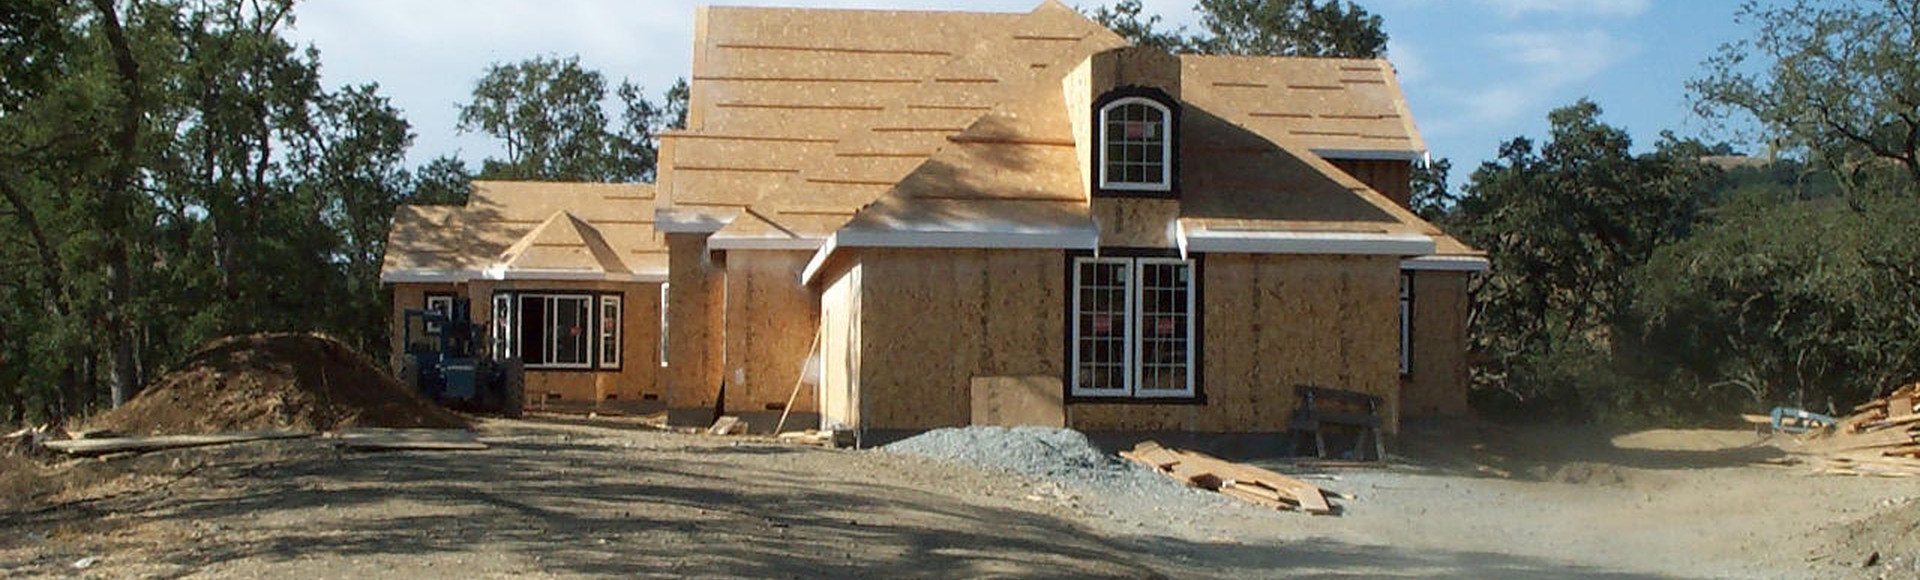 Do's and Don'ts of New Home Construction